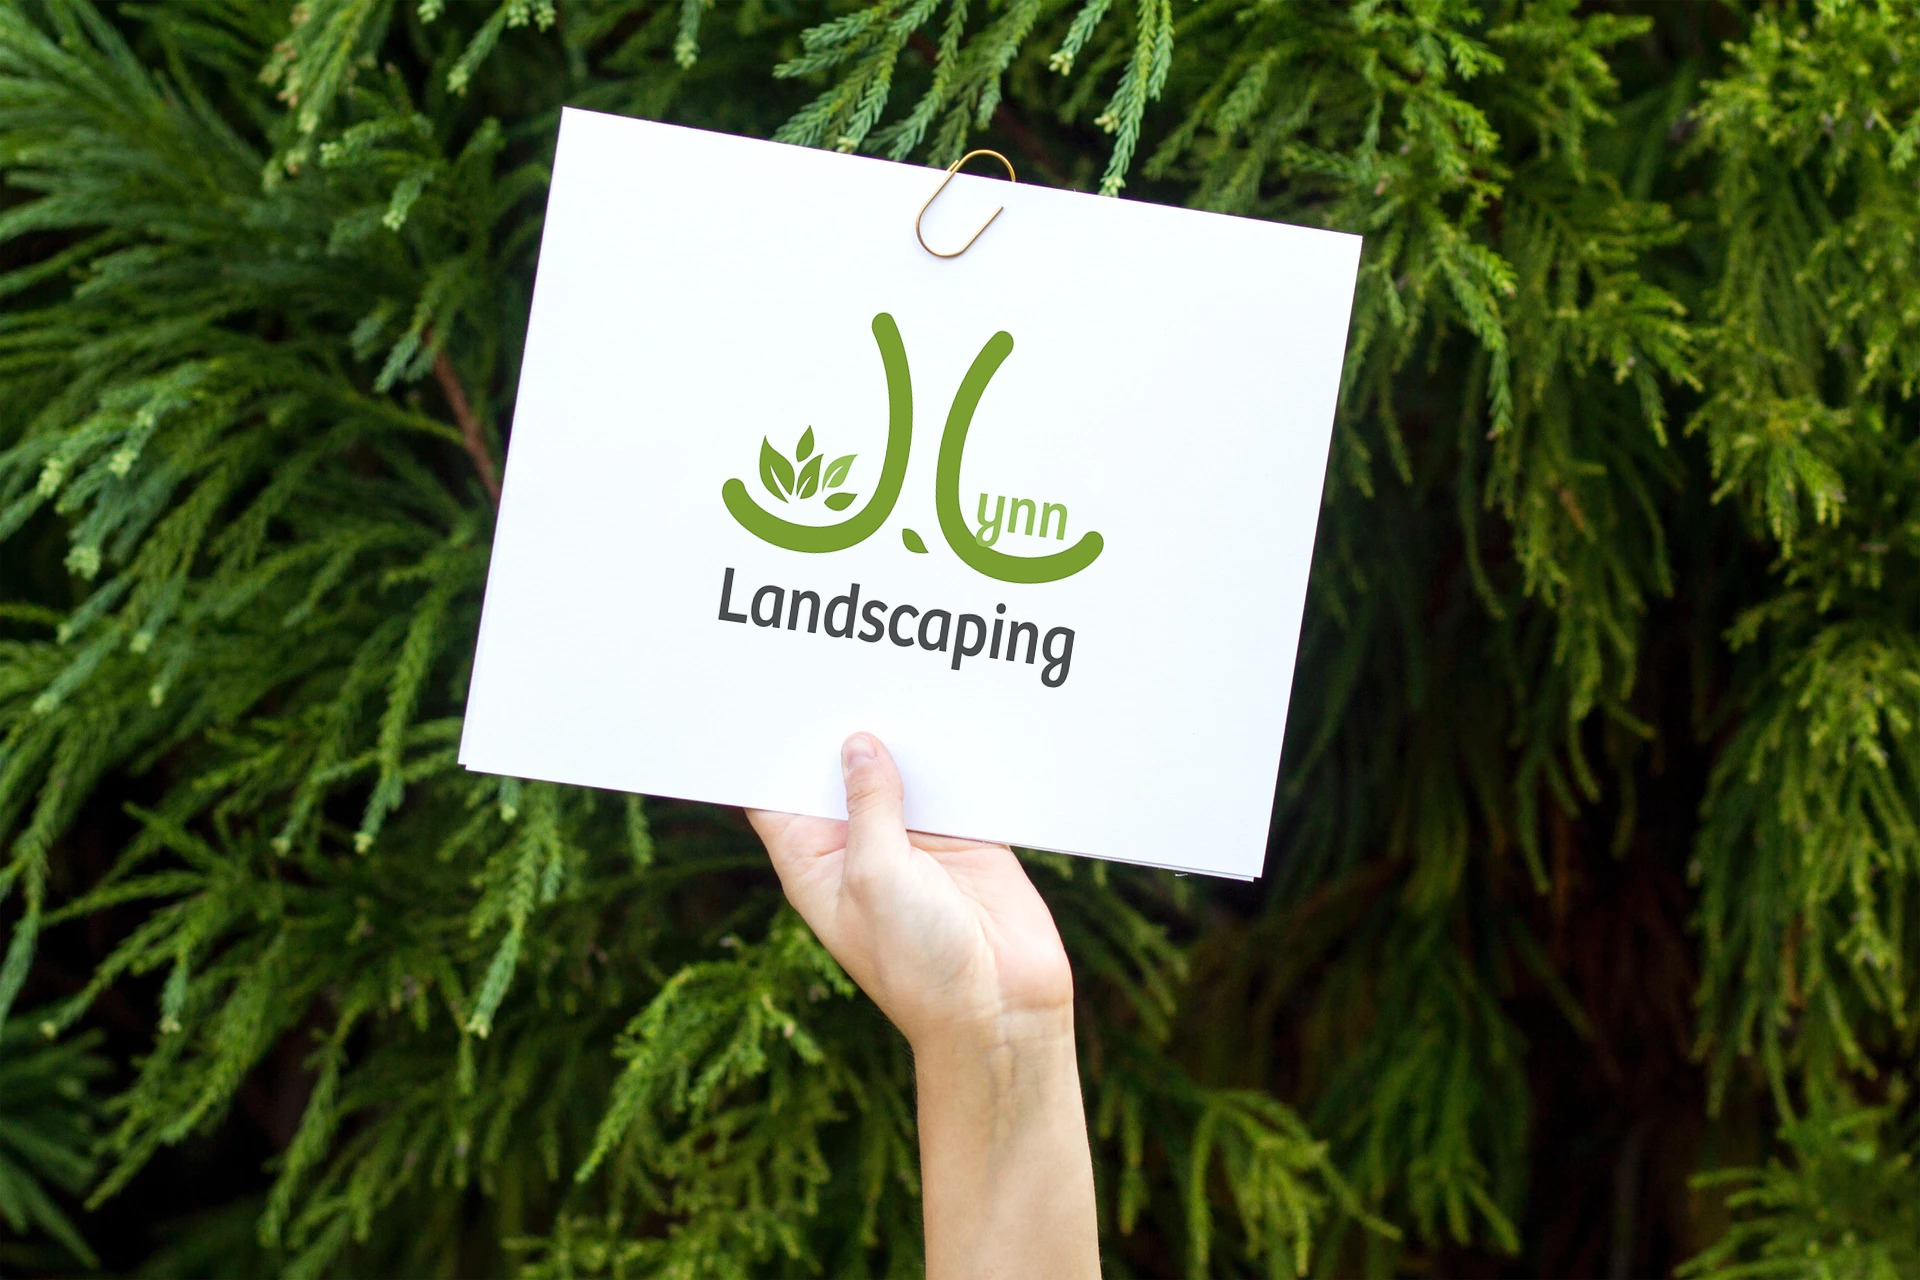 JLynn Landscaping logo on the white board